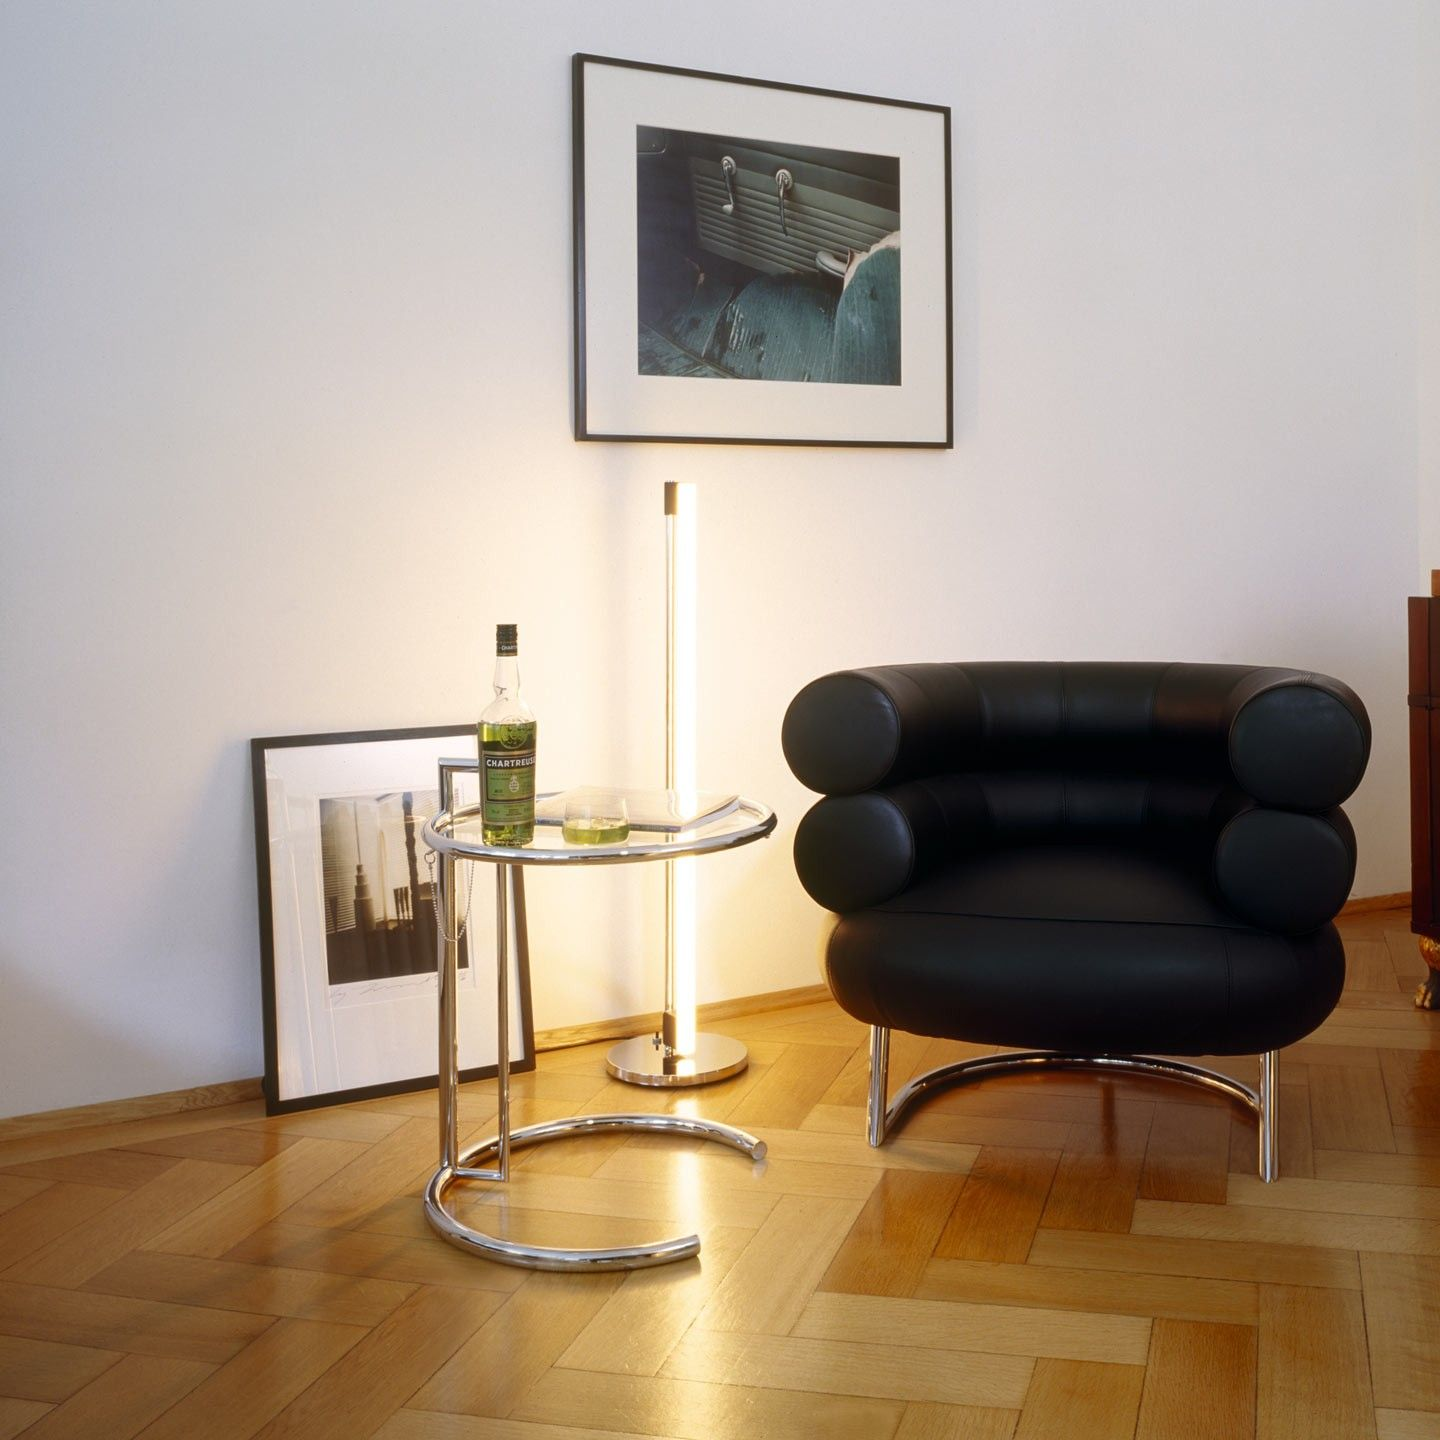 eileen grey sessel zuhause image idee rh zuhause capoffers com